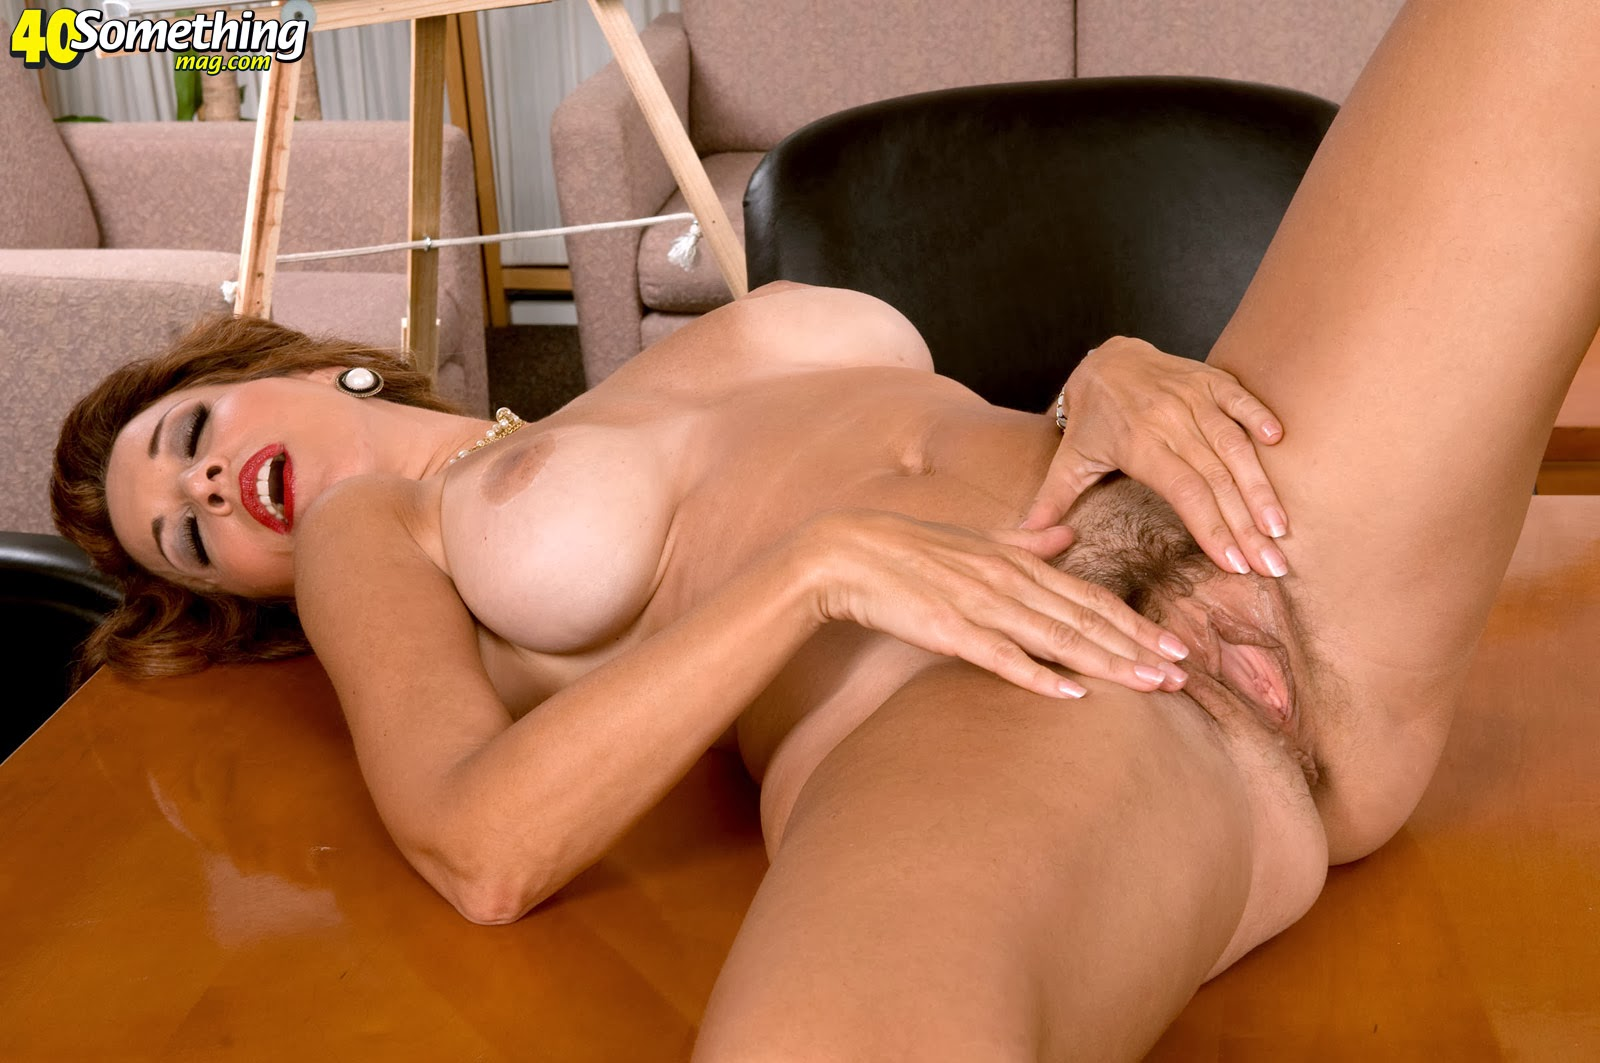 For council Gia giancarlo anal sex join